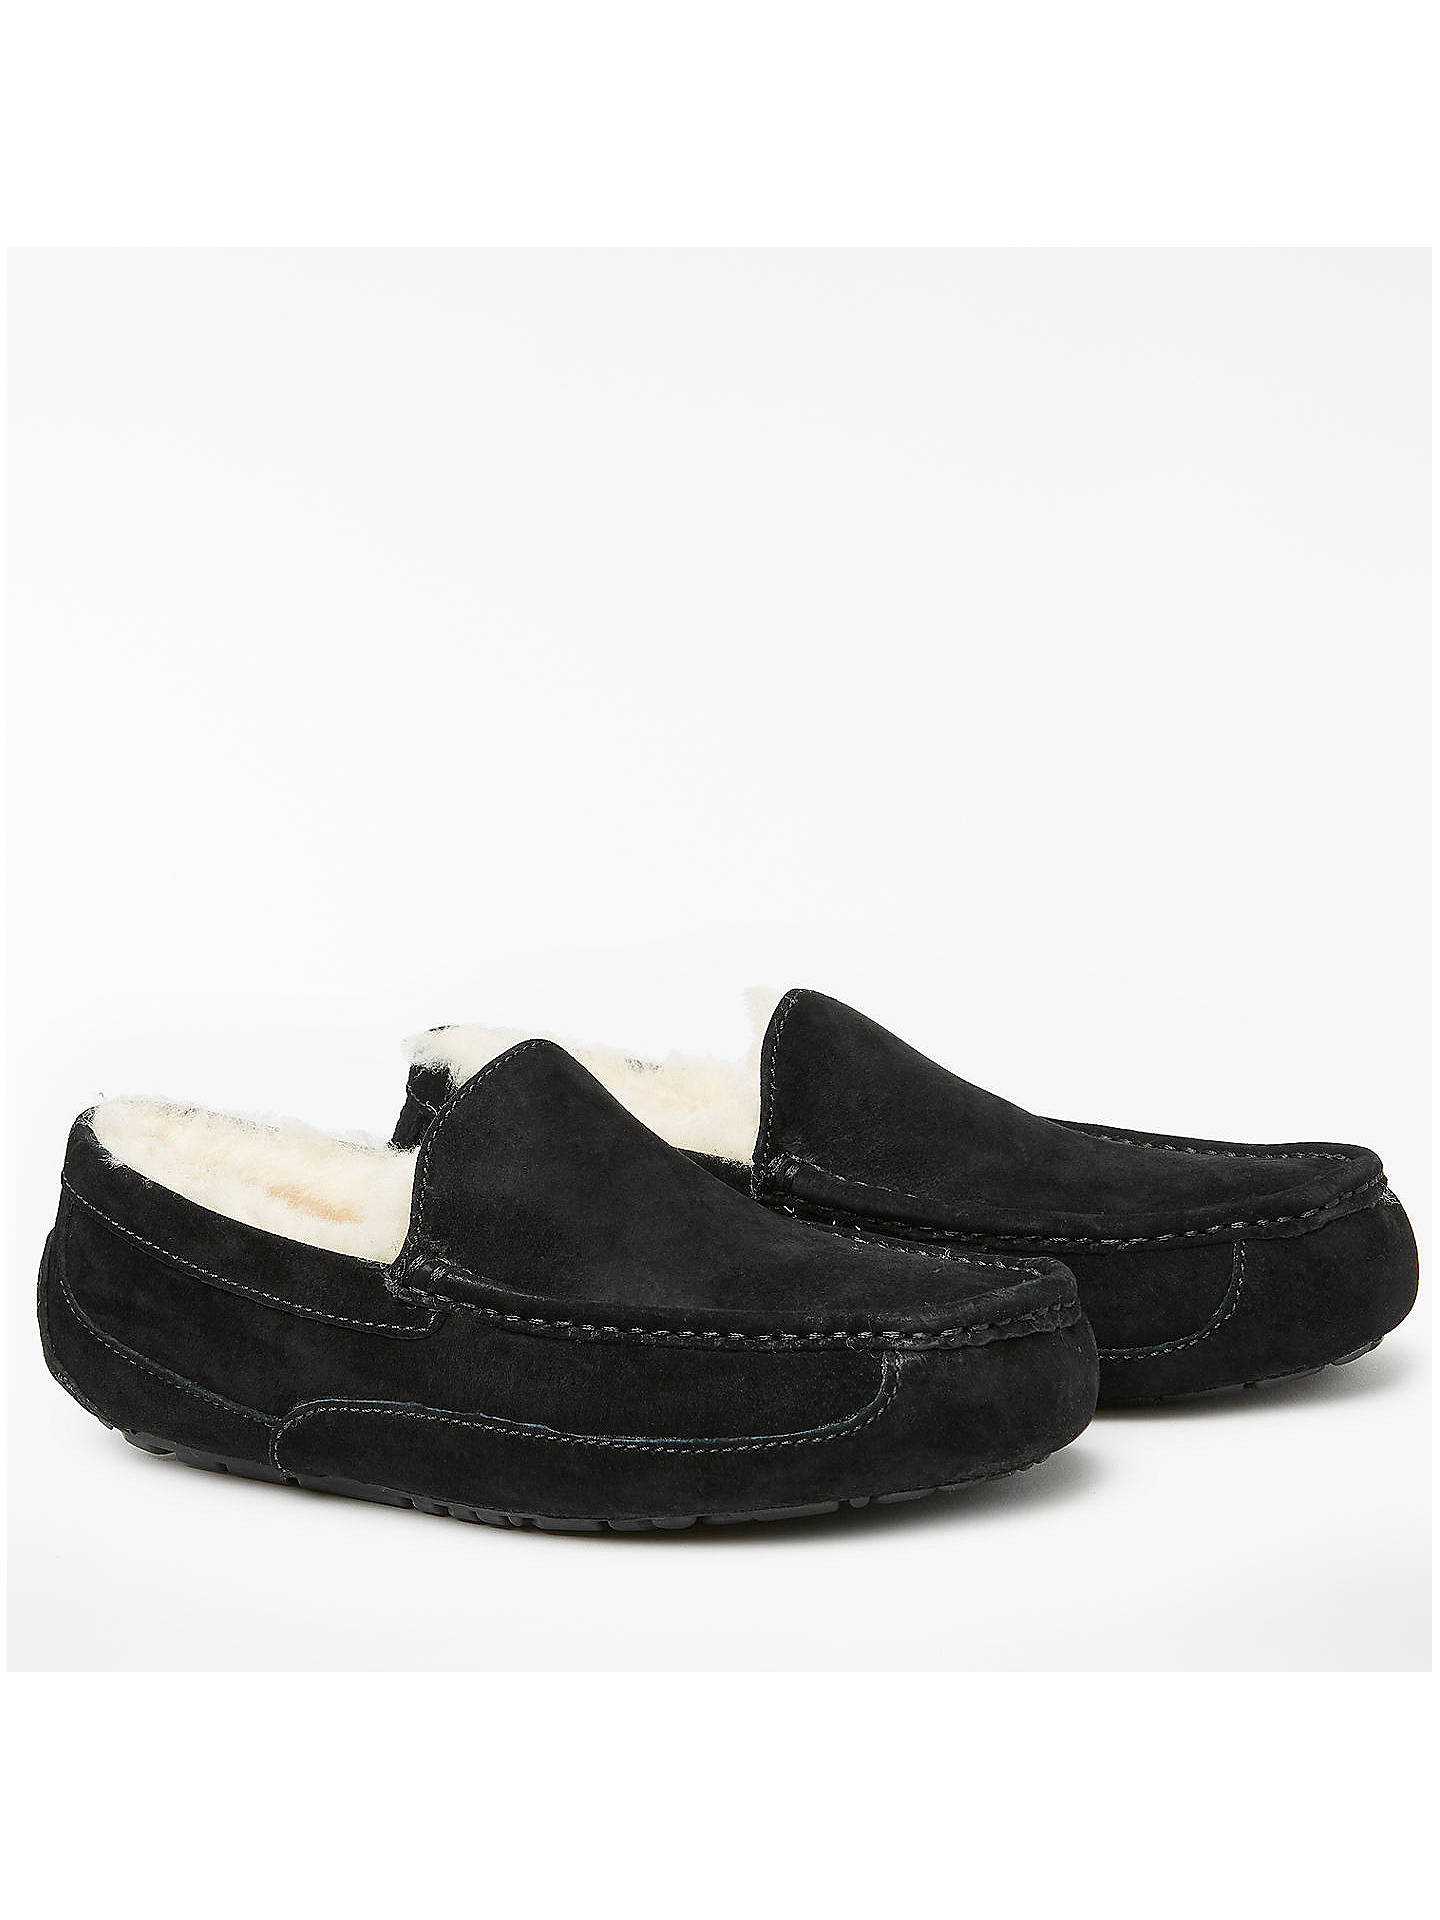 460cd2225ec UGG Ascot Moccasin Suede Slippers at John Lewis & Partners